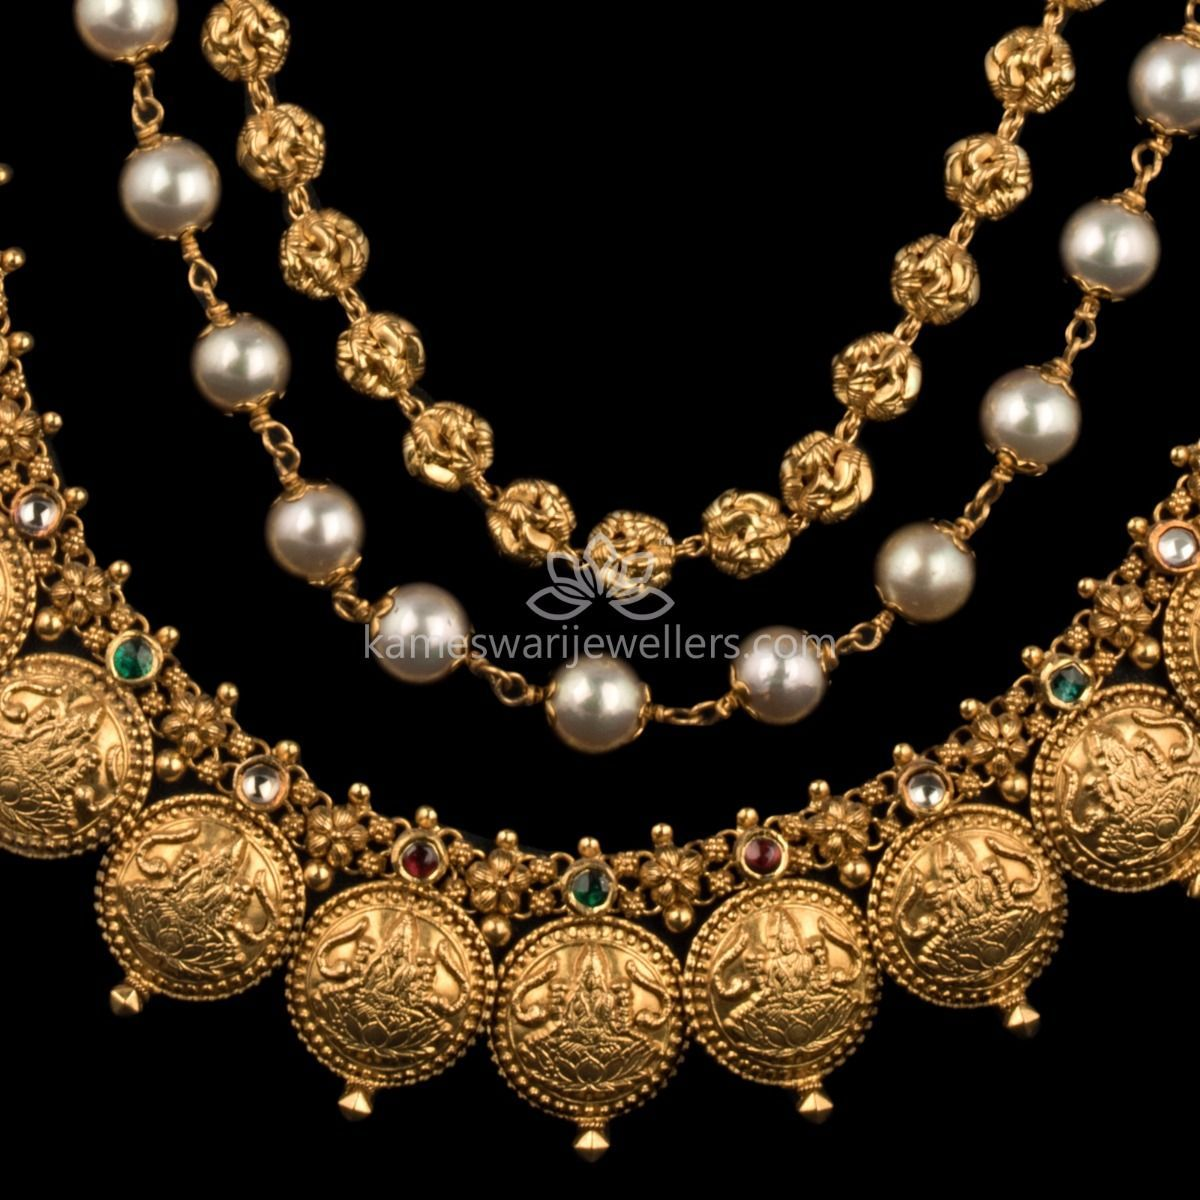 29+ Used gold jewelry for sale online information